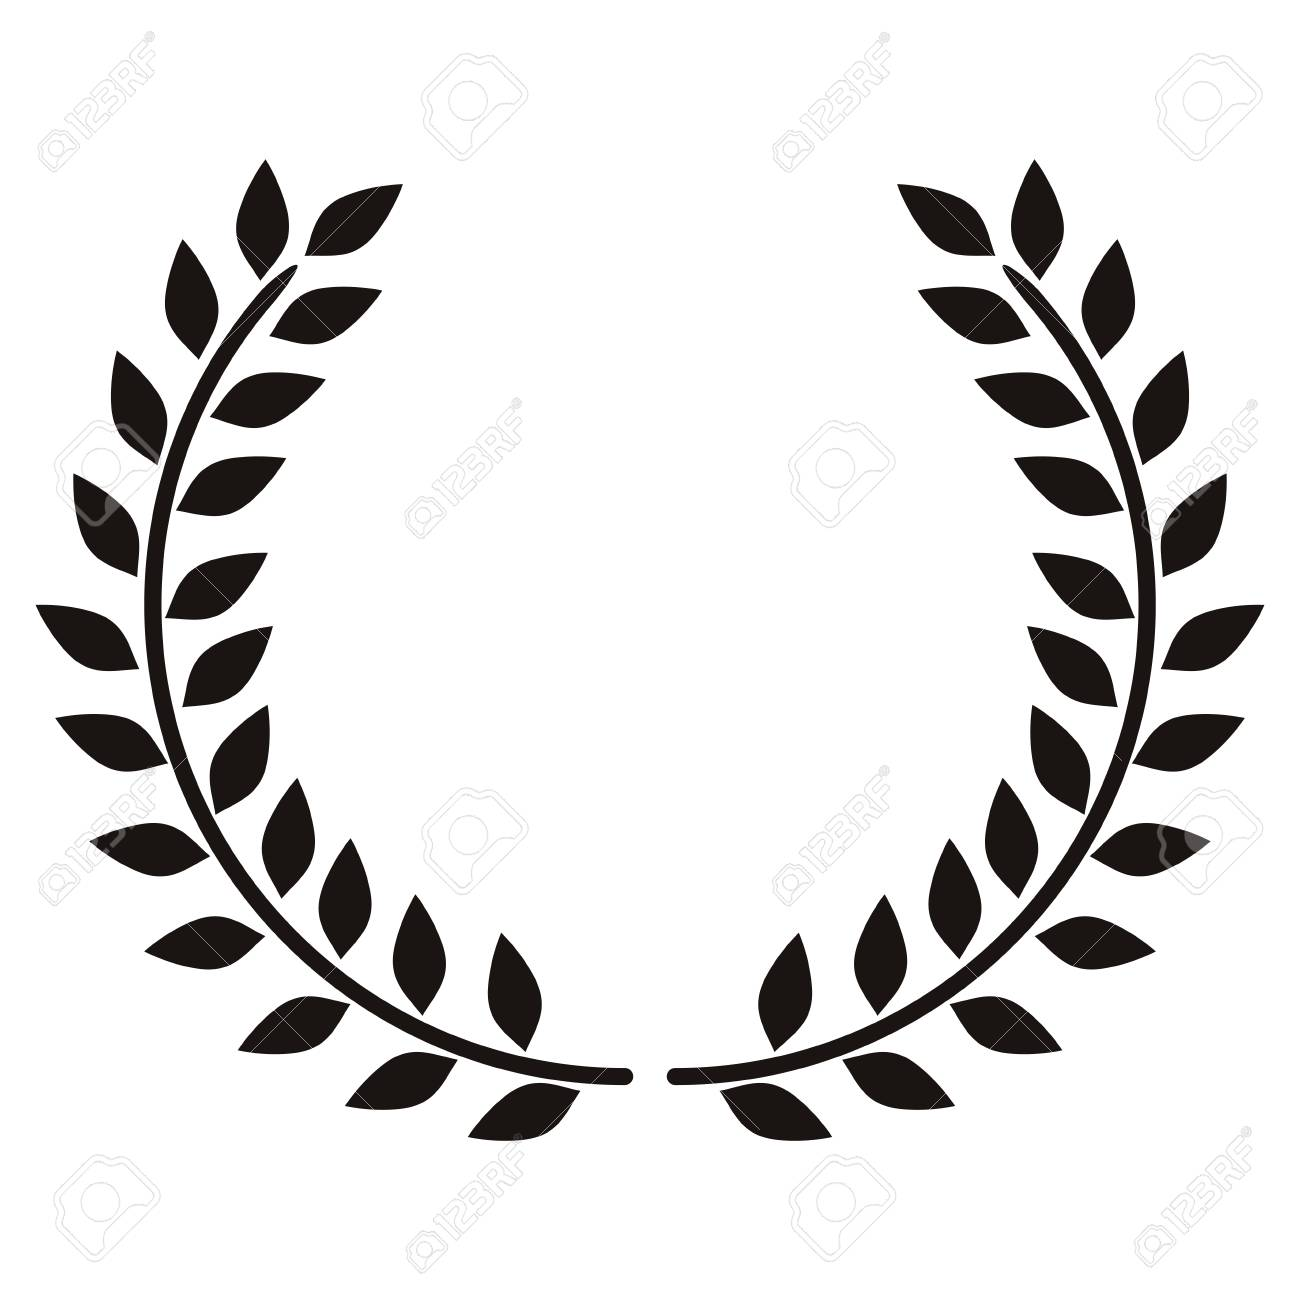 wreath leaves ornament icon vector illustration graphic royalty free